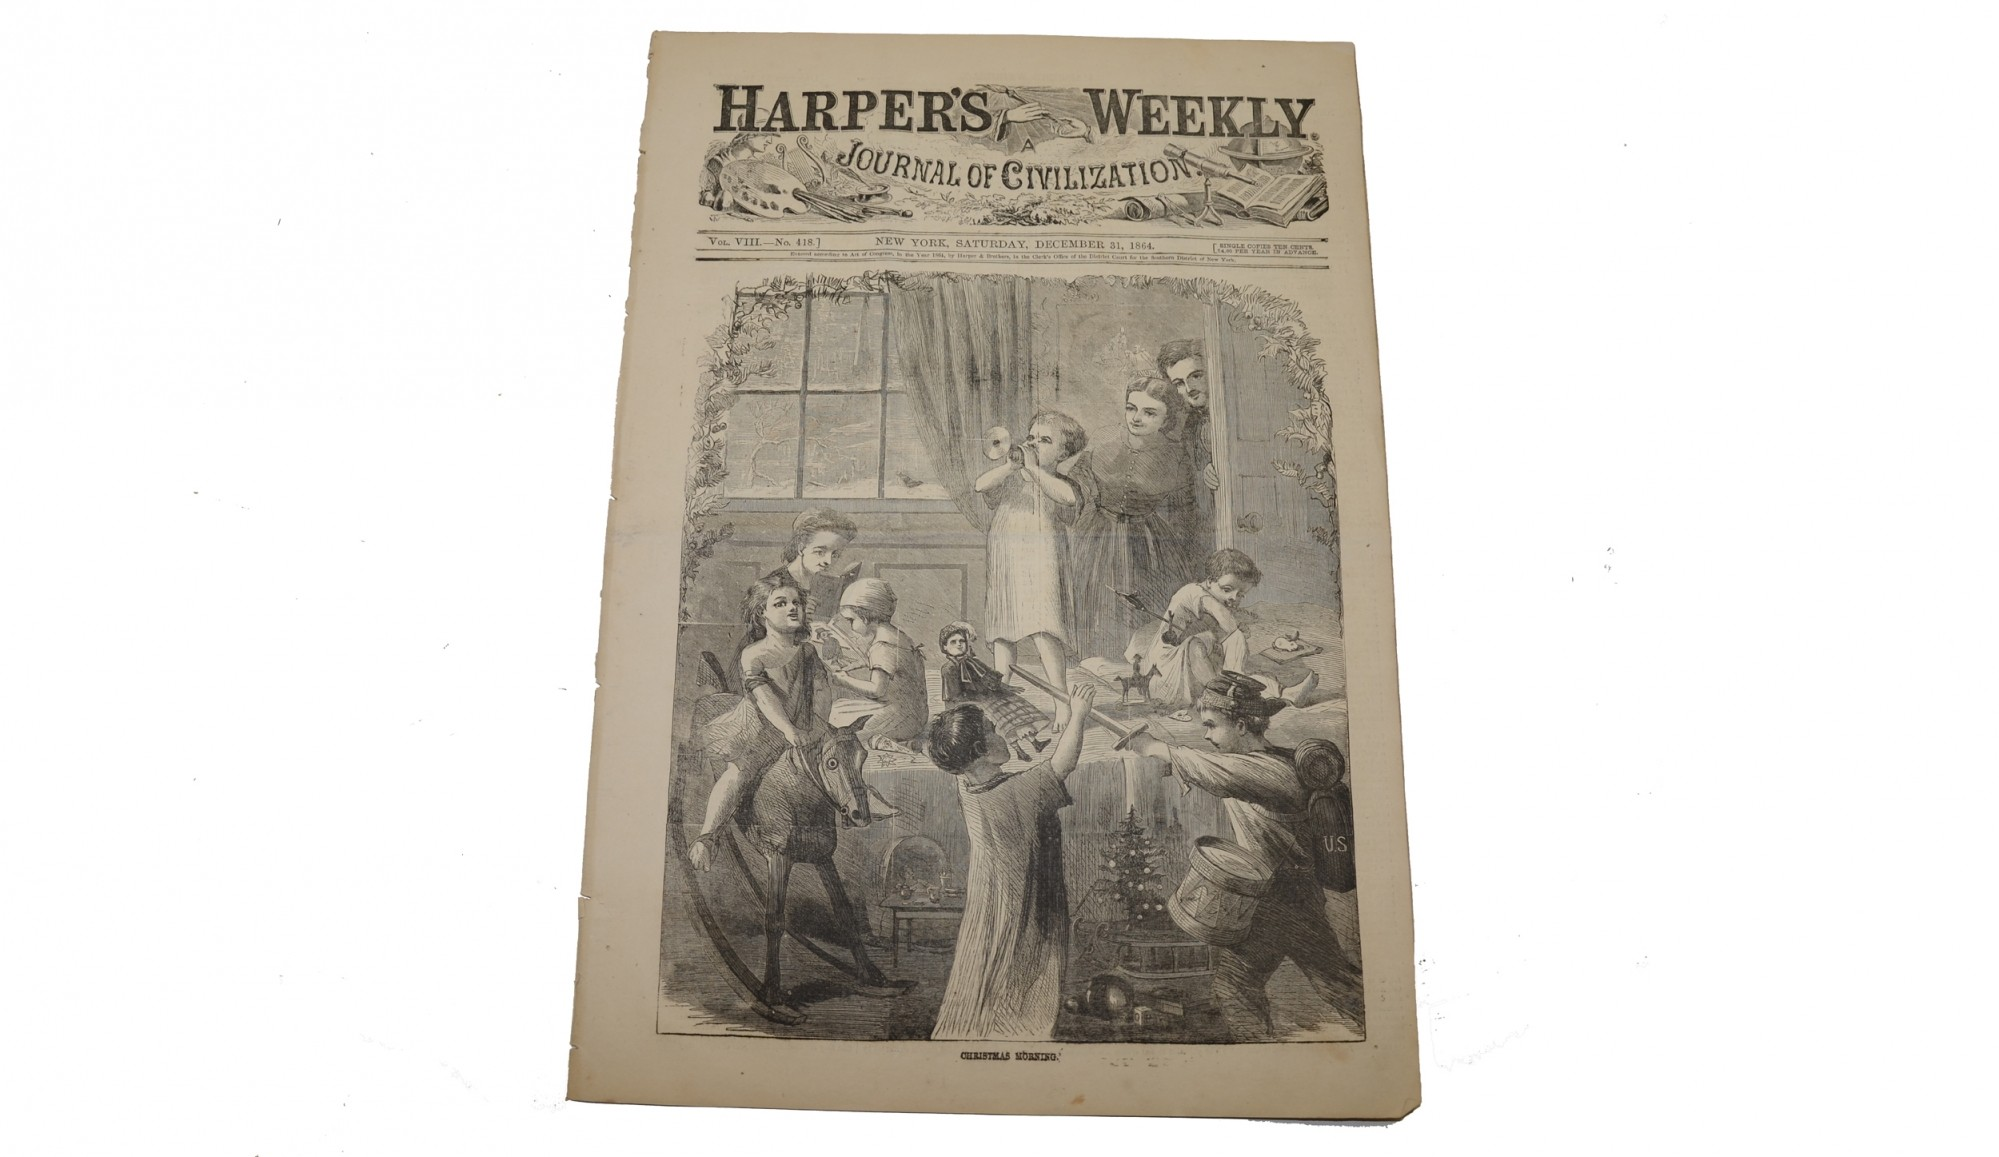 HARPER'S WEEKLY DECEMBER 31, 1864 – CHRISTMAS AND NEW YEAR'S